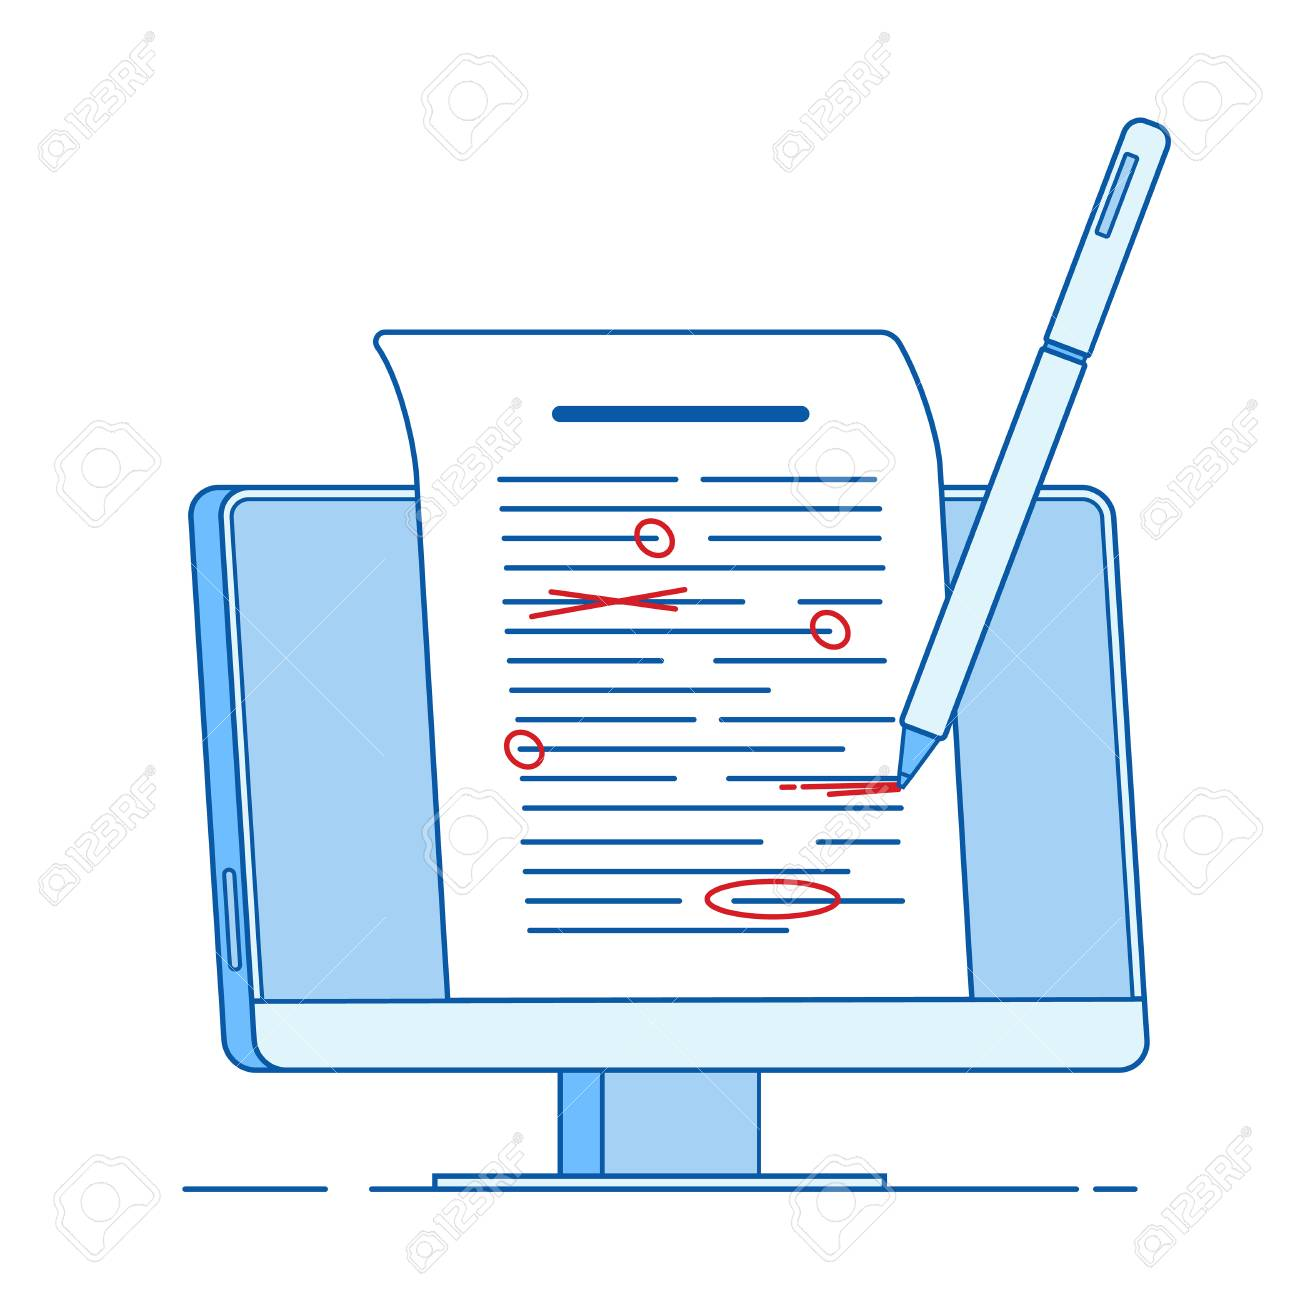 Write edit text concept. Writing editing documents, correct proofreading text essay services vector line concept. Illustration of grammar proofread, edit document - 121462632